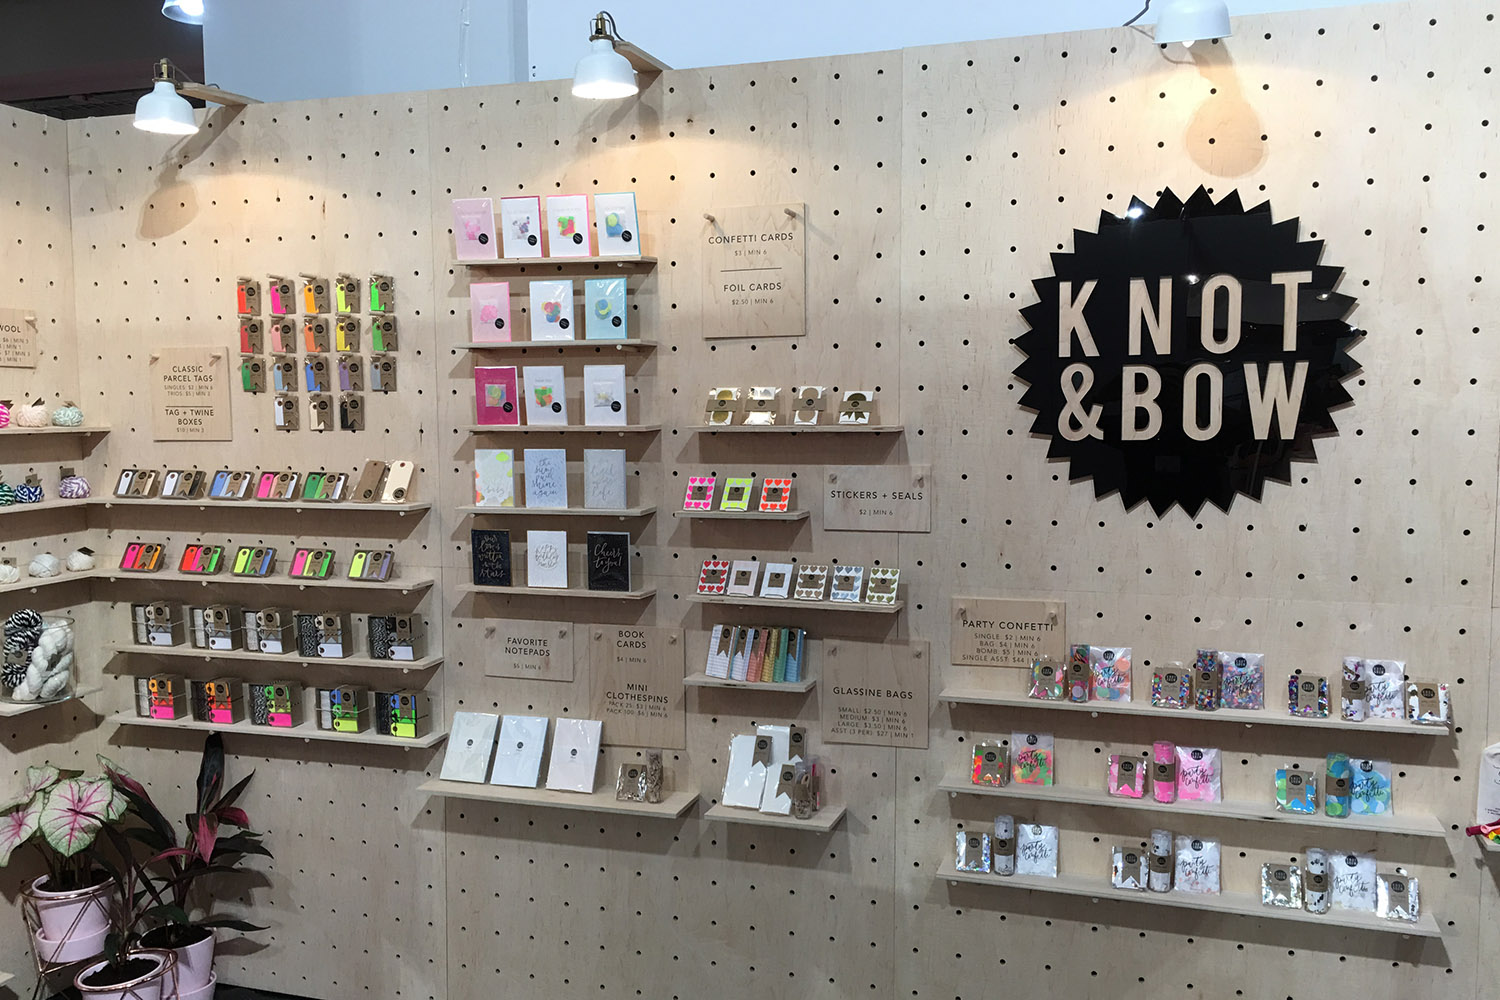 Handmade pegboard panels were fabricated for Knot & Bow for use at trade shows